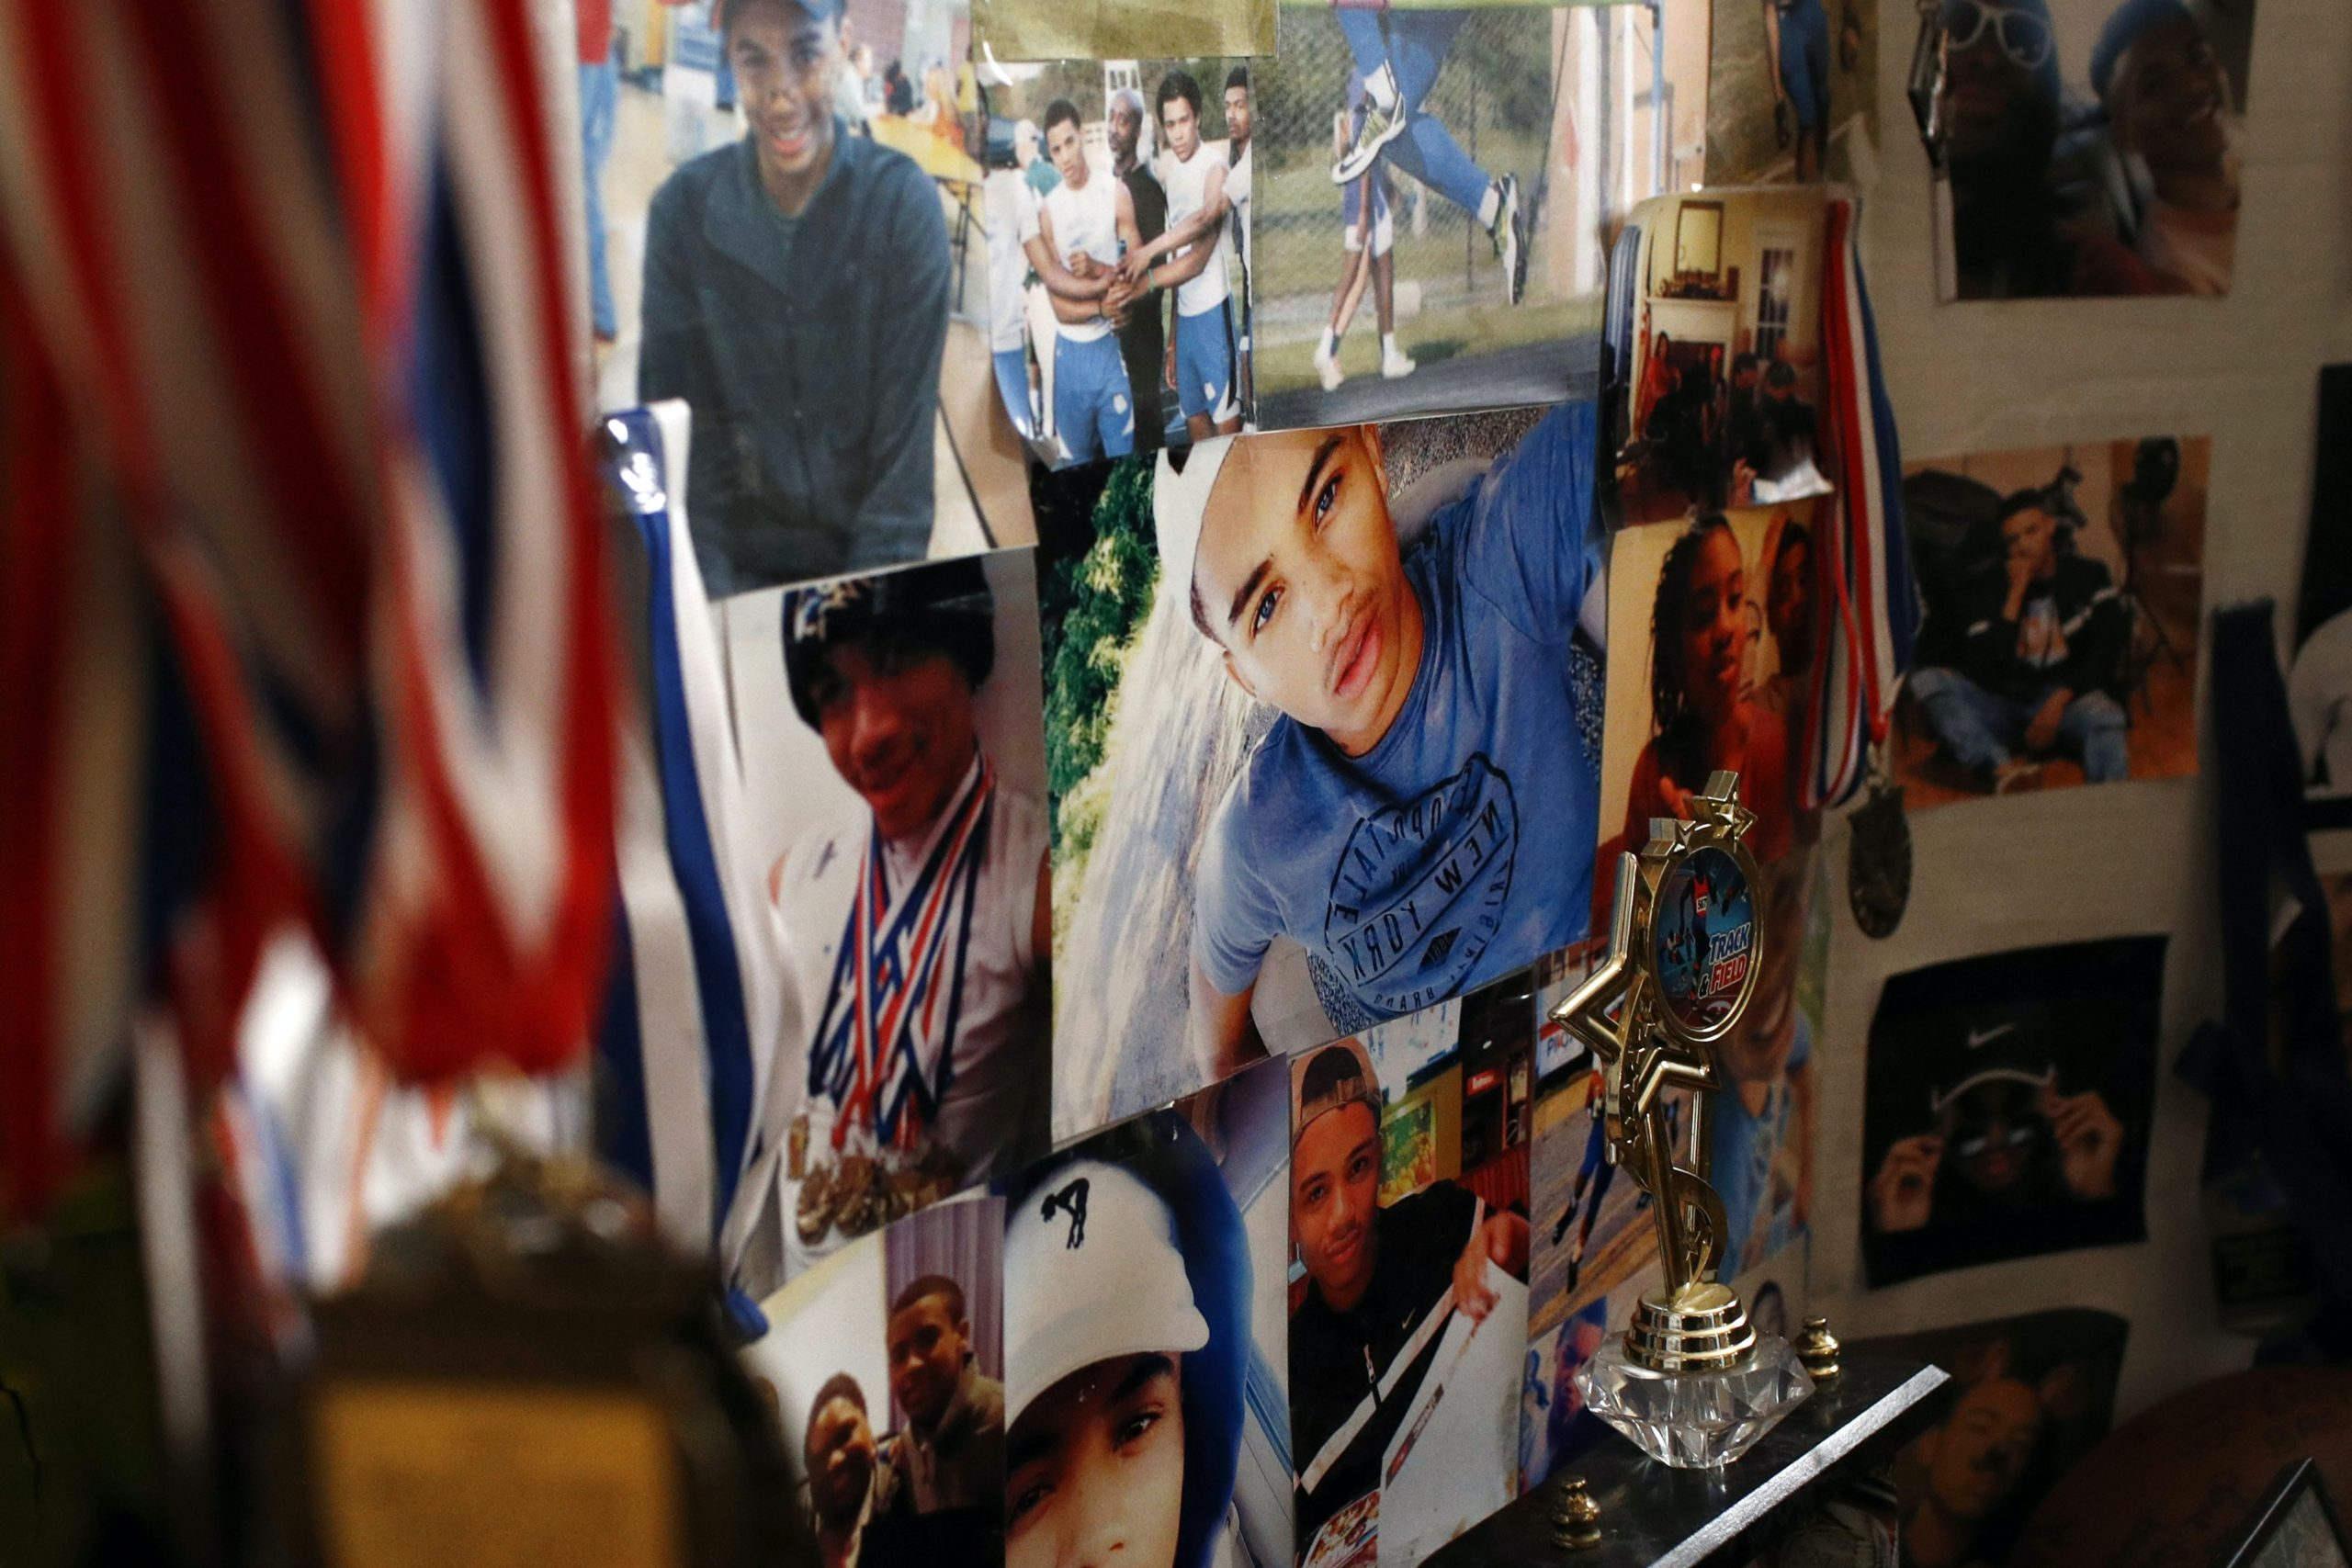 In this Jan. 28, 2019, photo, pictures of Anton Black decorate a collage in his family's home in Greensboro, Md. Black, 19, died after a struggle with three officers and a civilian outside the home in September 2018. (AP Photo/Patrick Semansky)